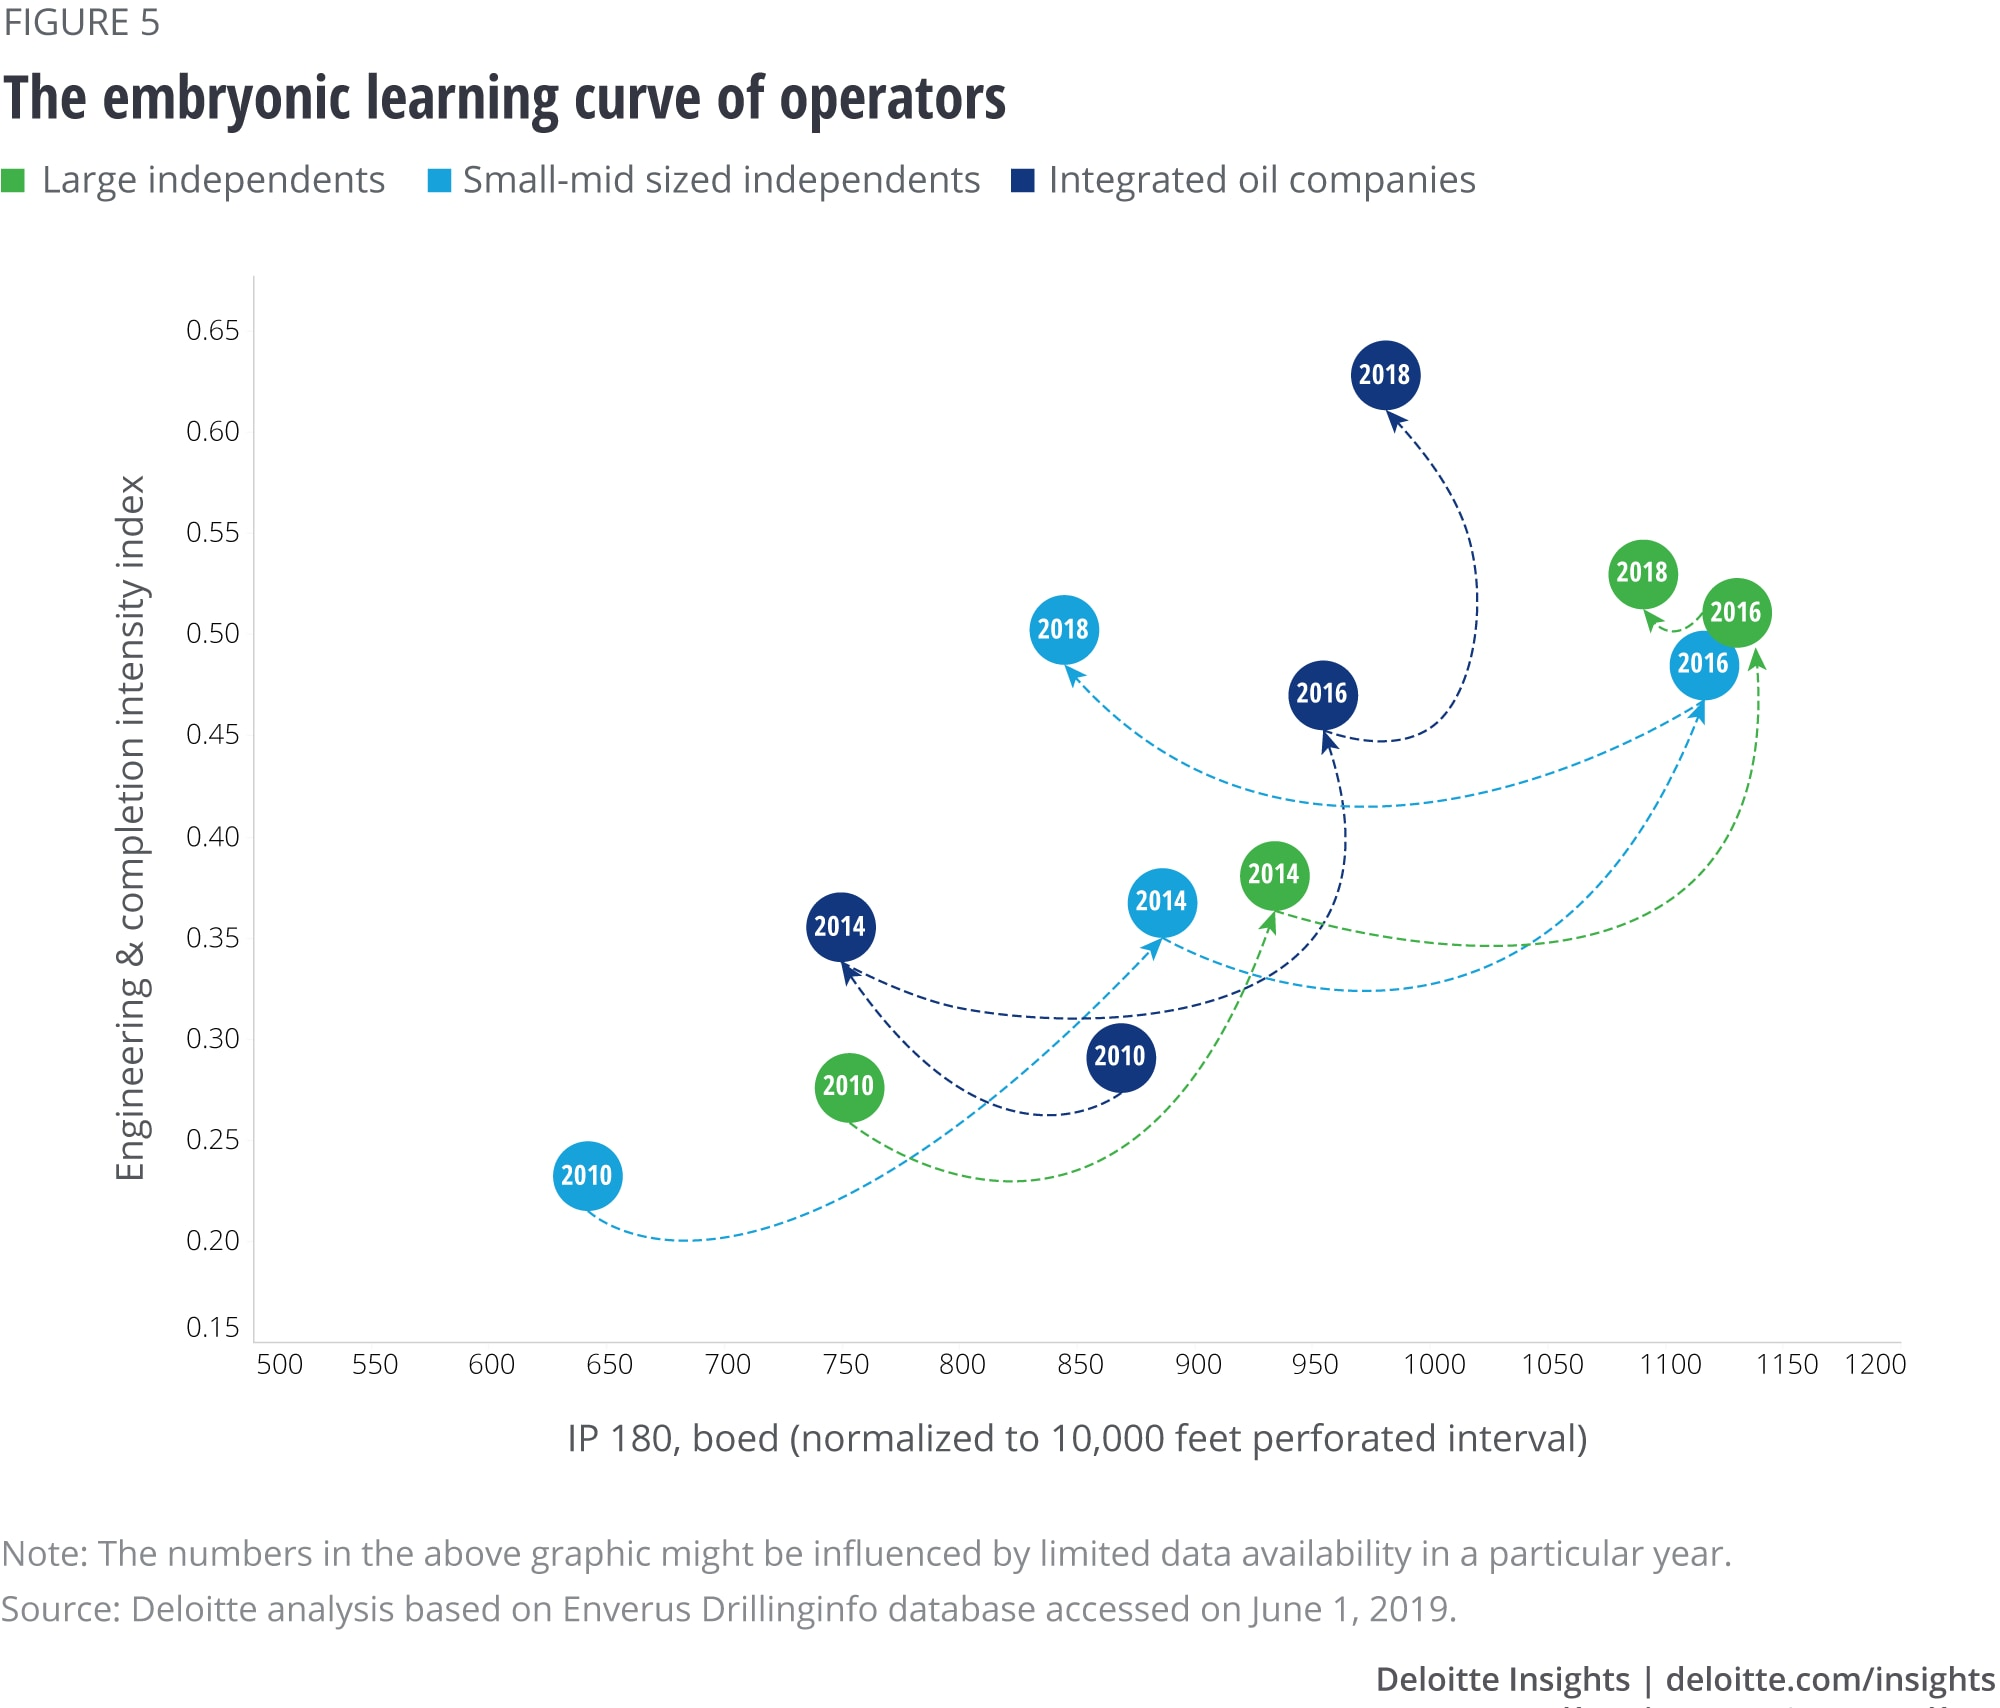 The embryonic learning curve of operators